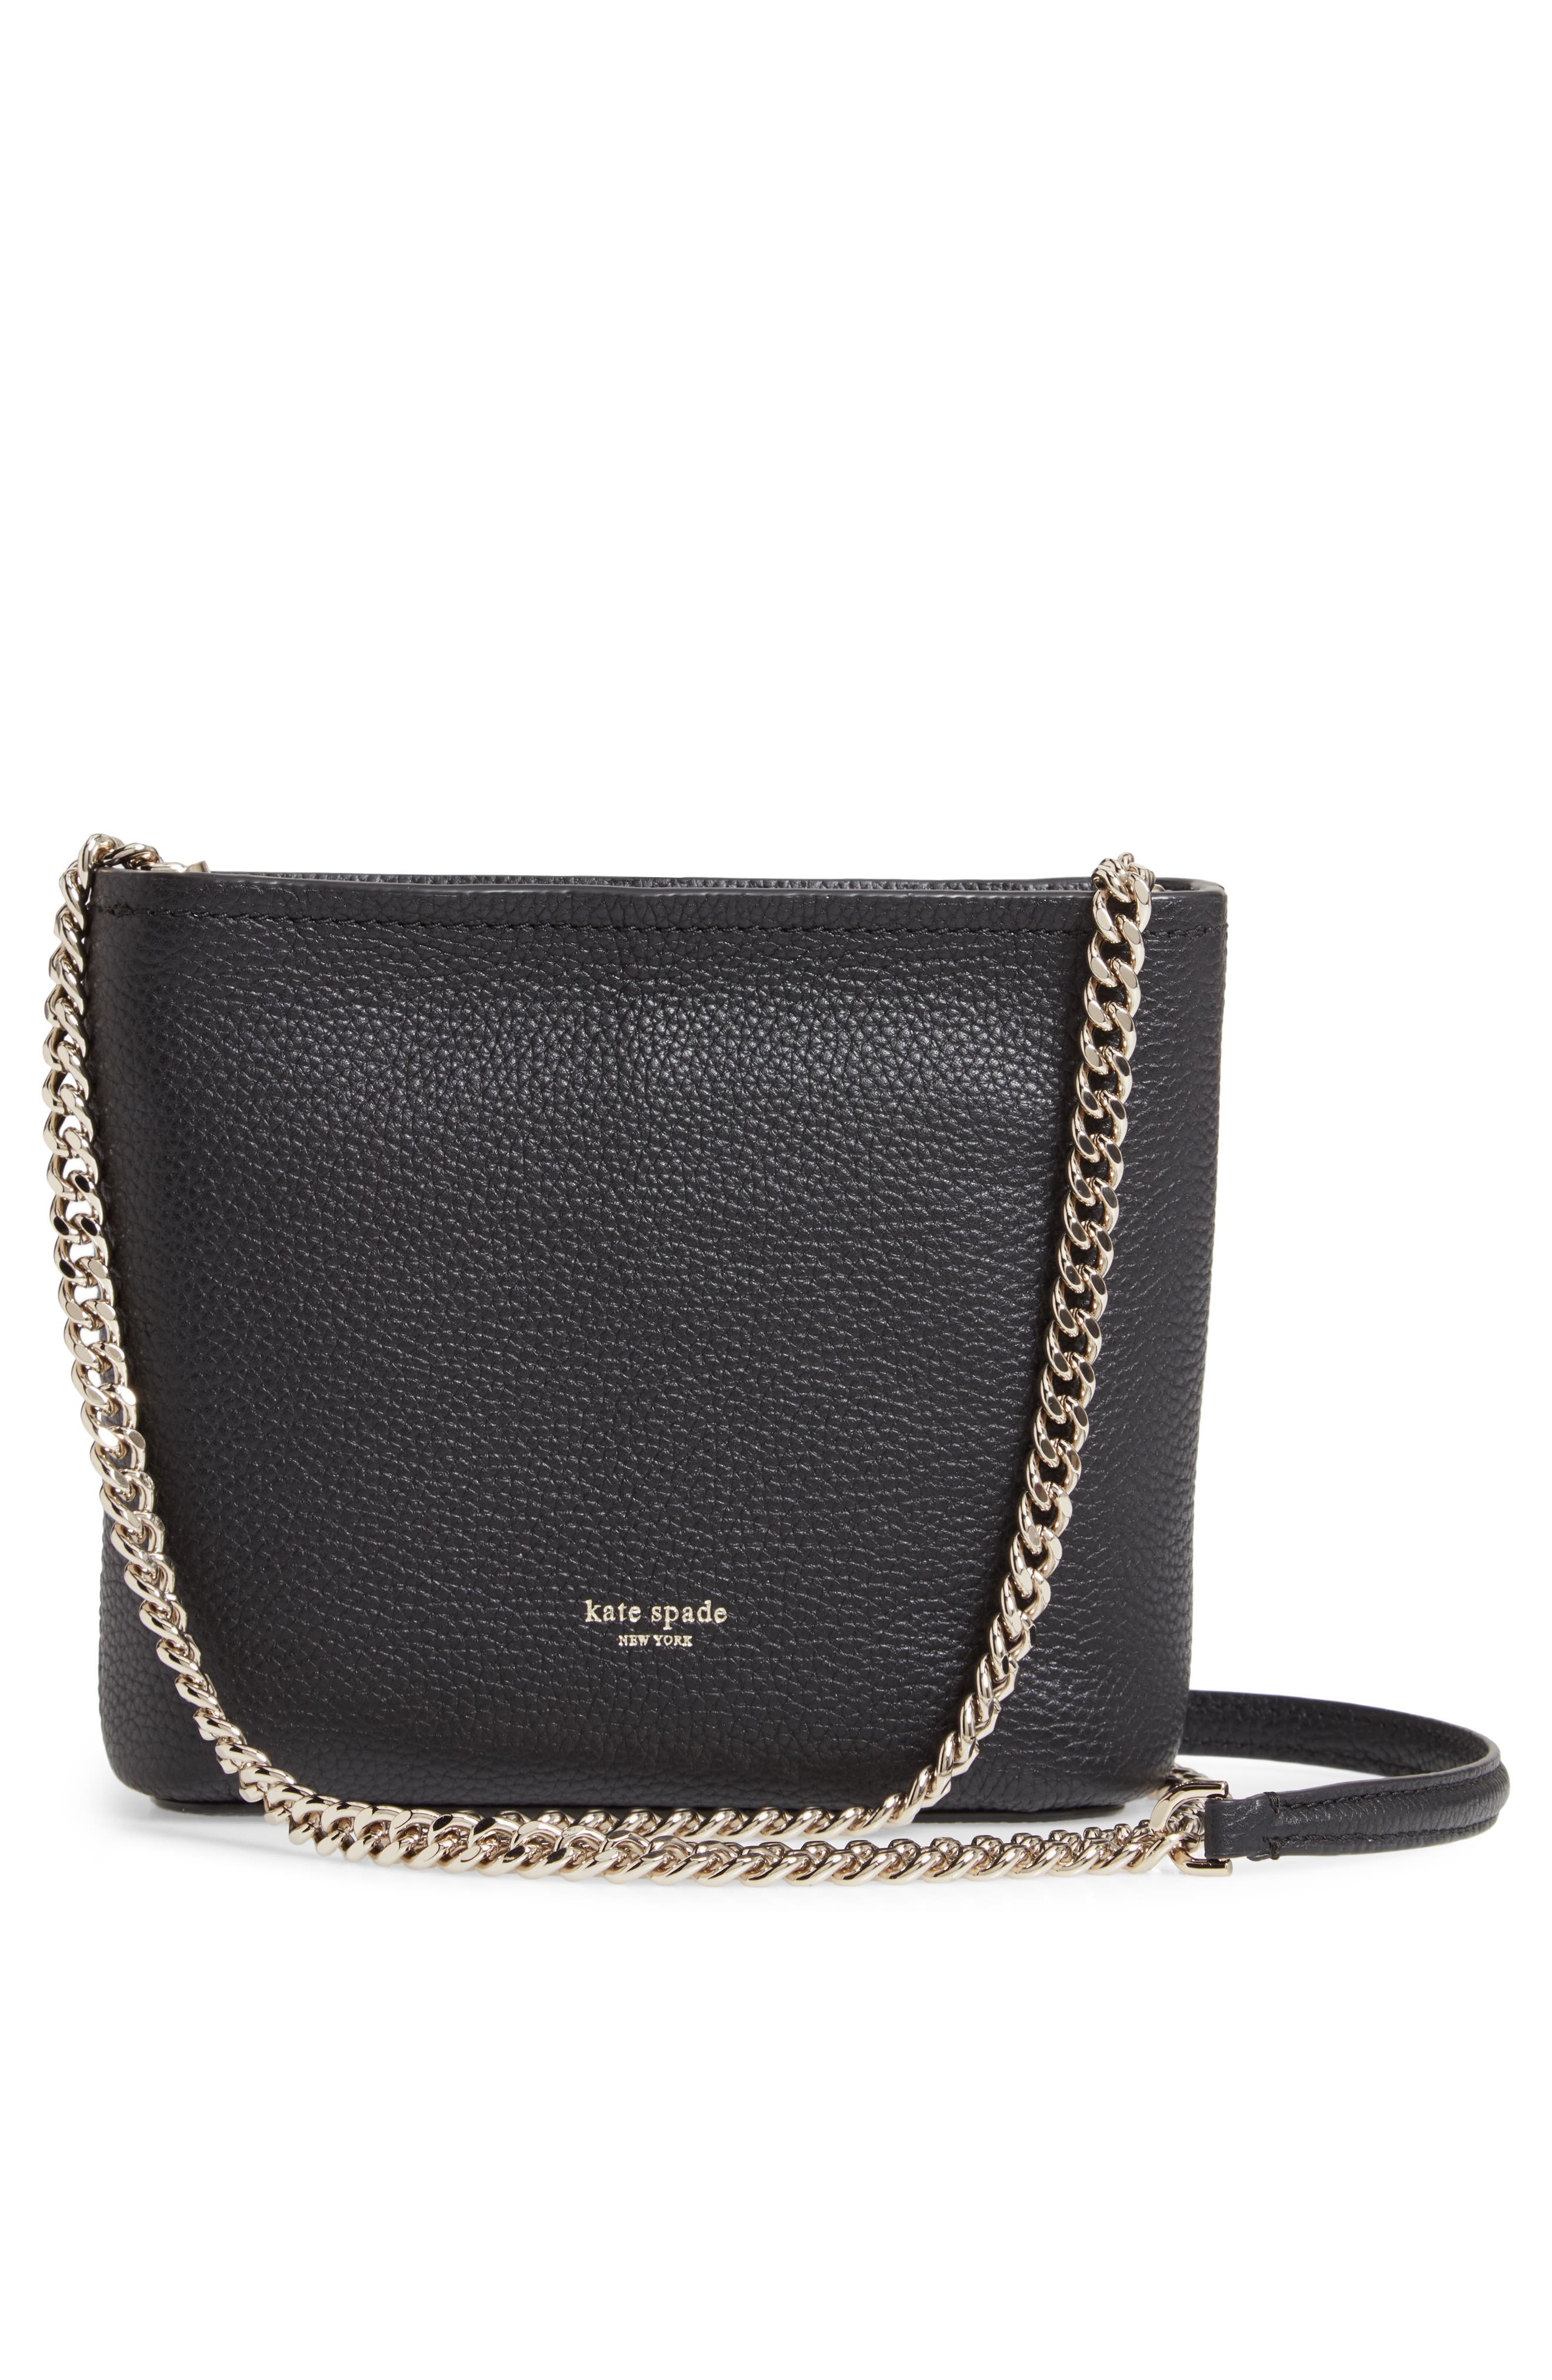 KATE SPADE NEW YORK, small polly leather crossbody bag, Alternate thumbnail 4, color, BLACK